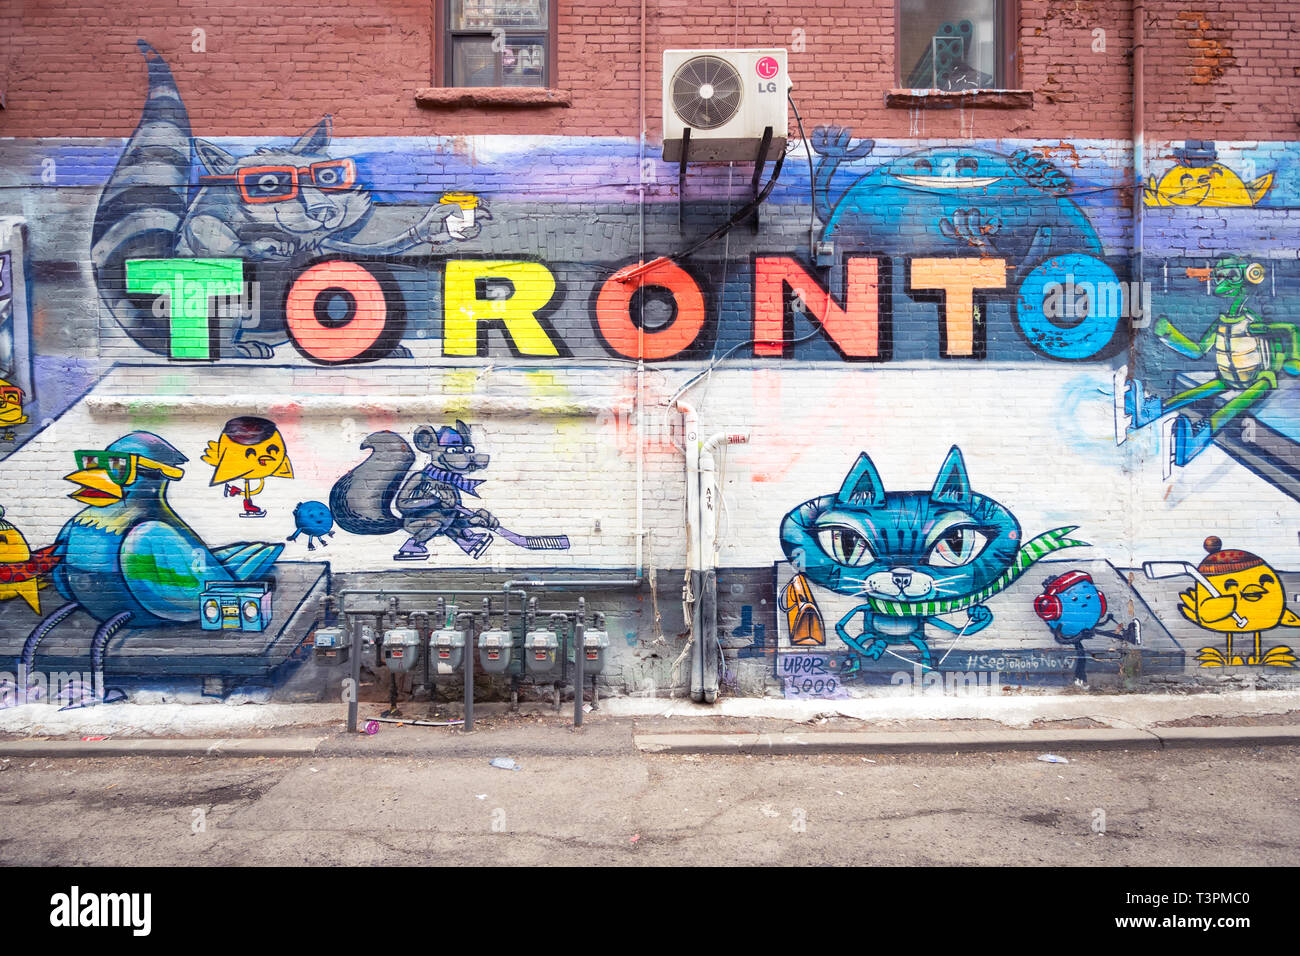 Brilliant urban art and murals on Graffiti Alley (Rush Lane), in the Queen Street West district of Toronto, Ontario, Canada. - Stock Image